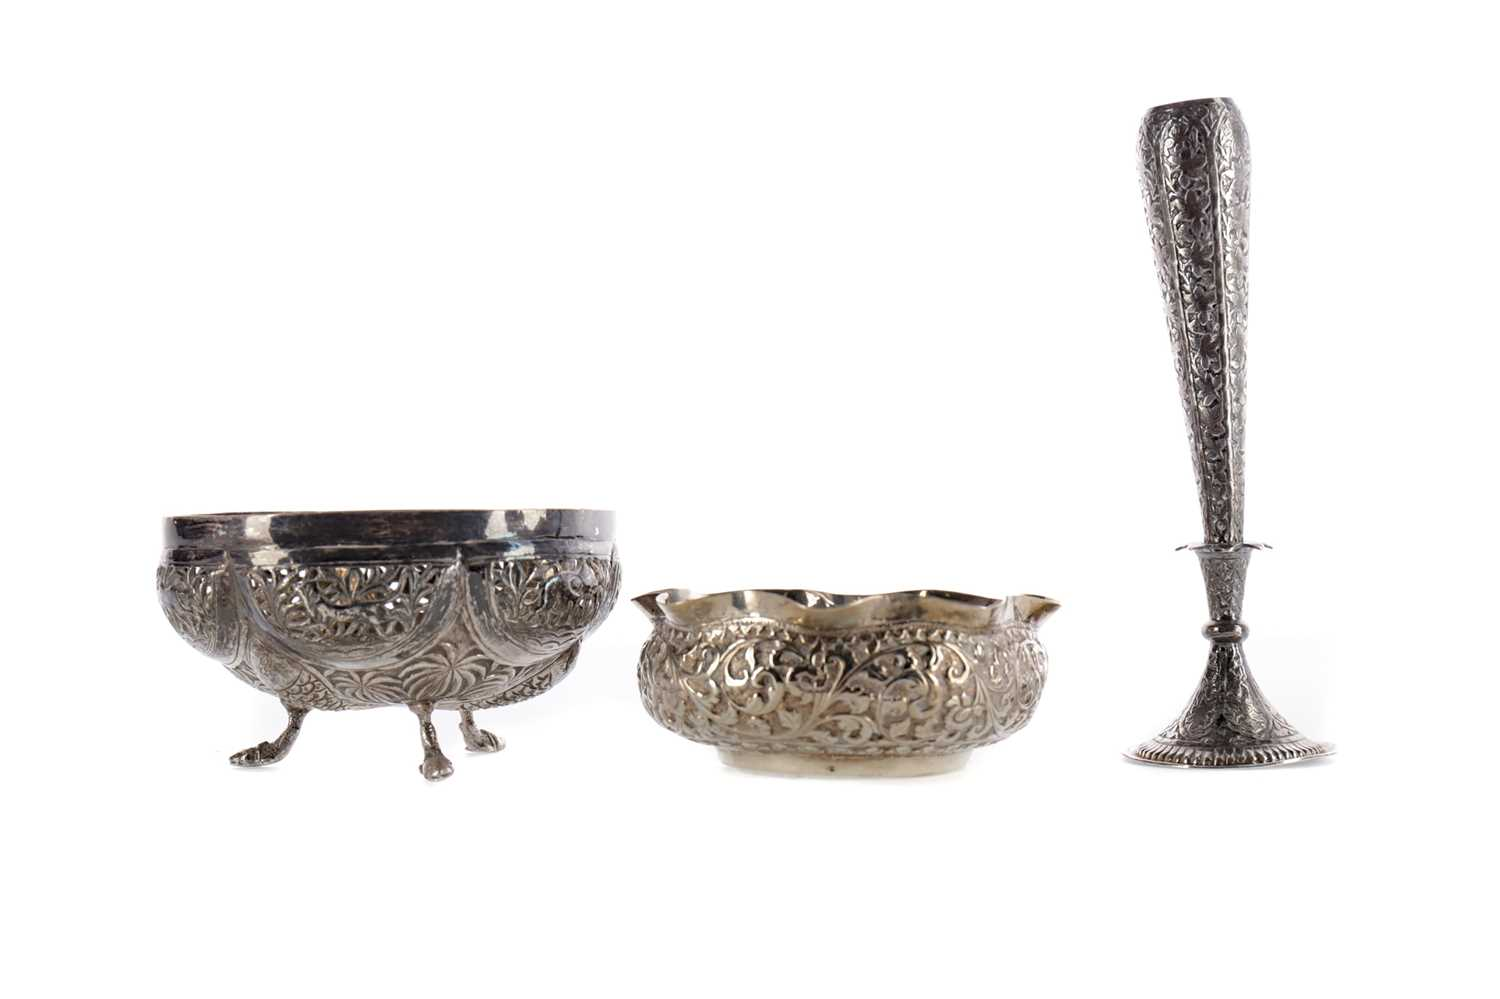 Lot 813 - AN INDIAN SILVER CIRCULAR BOWL, ANOTHER BOWL AND A VASE